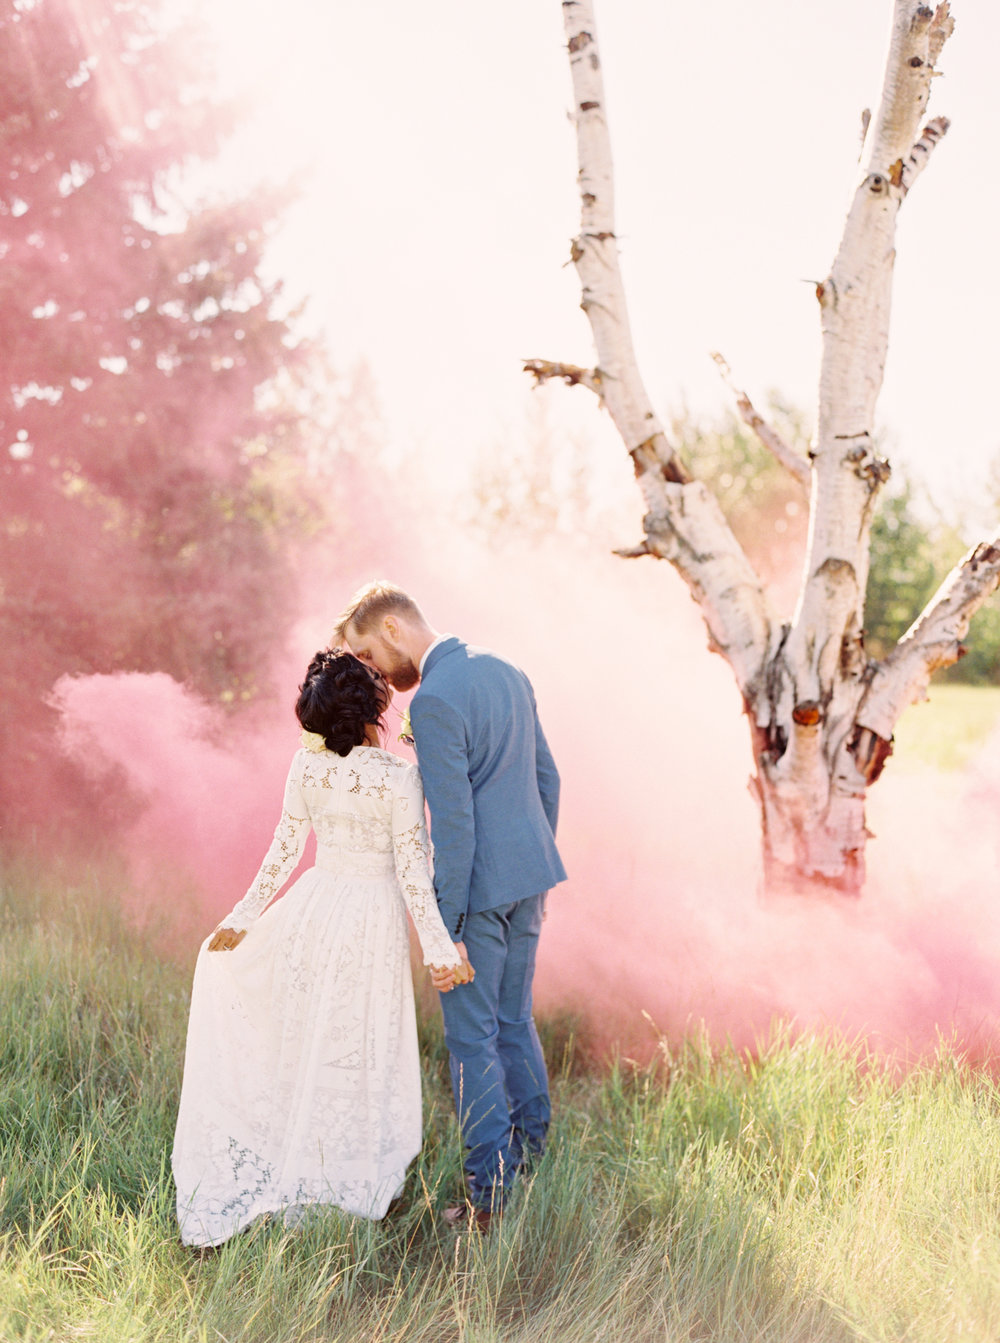 calgary wedding photographers | Smoke bomb wedding photo | fine art film photographers